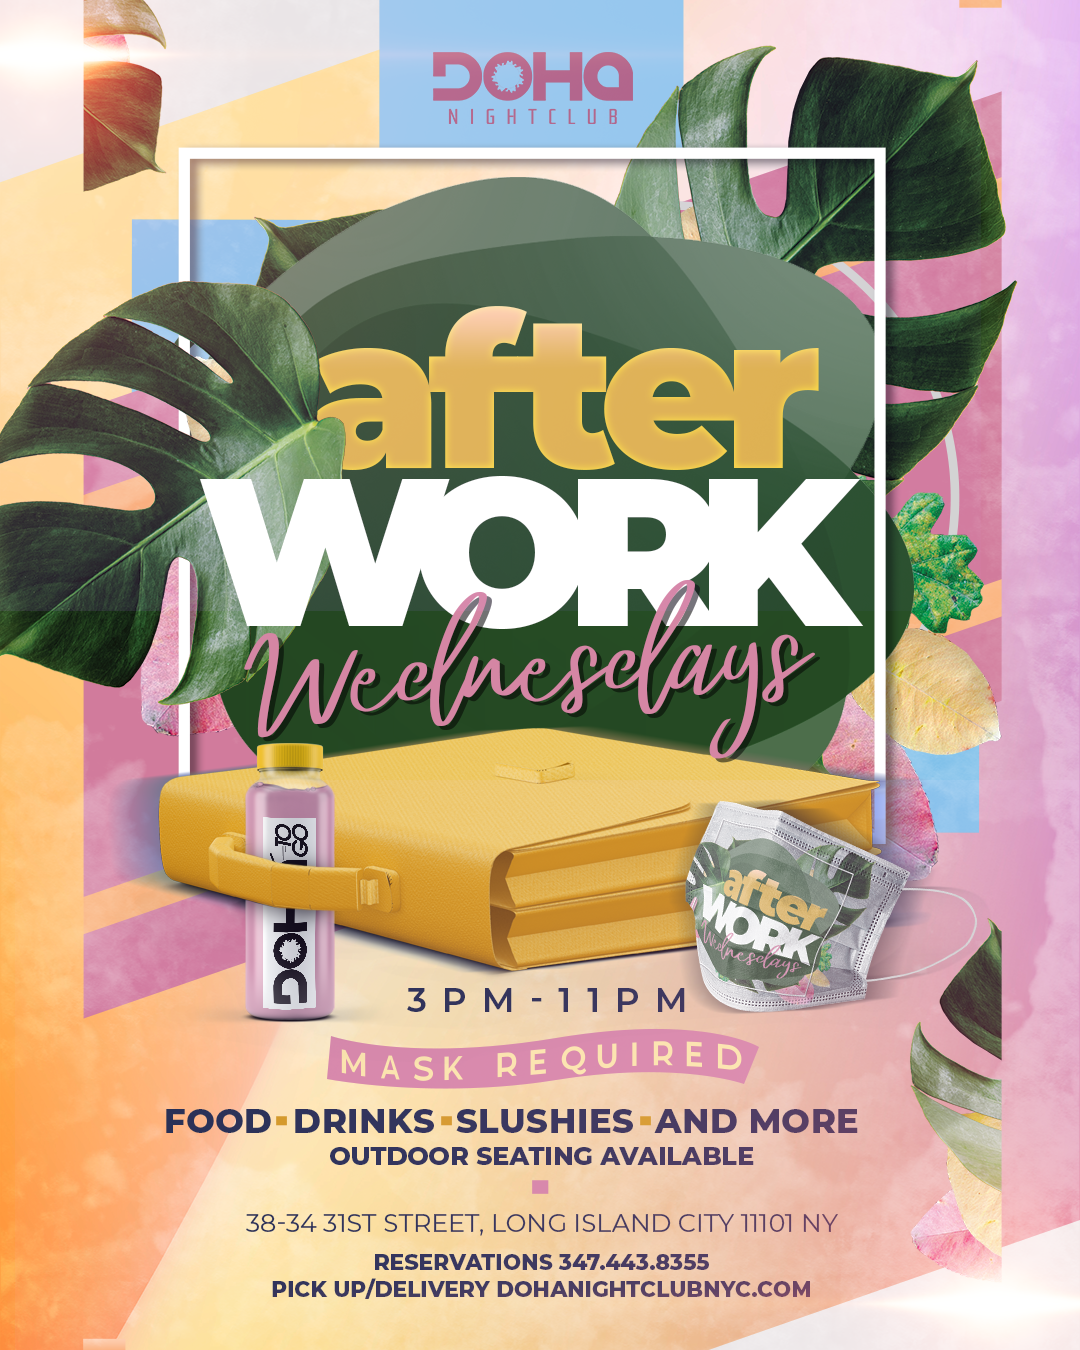 wednesday afterwork